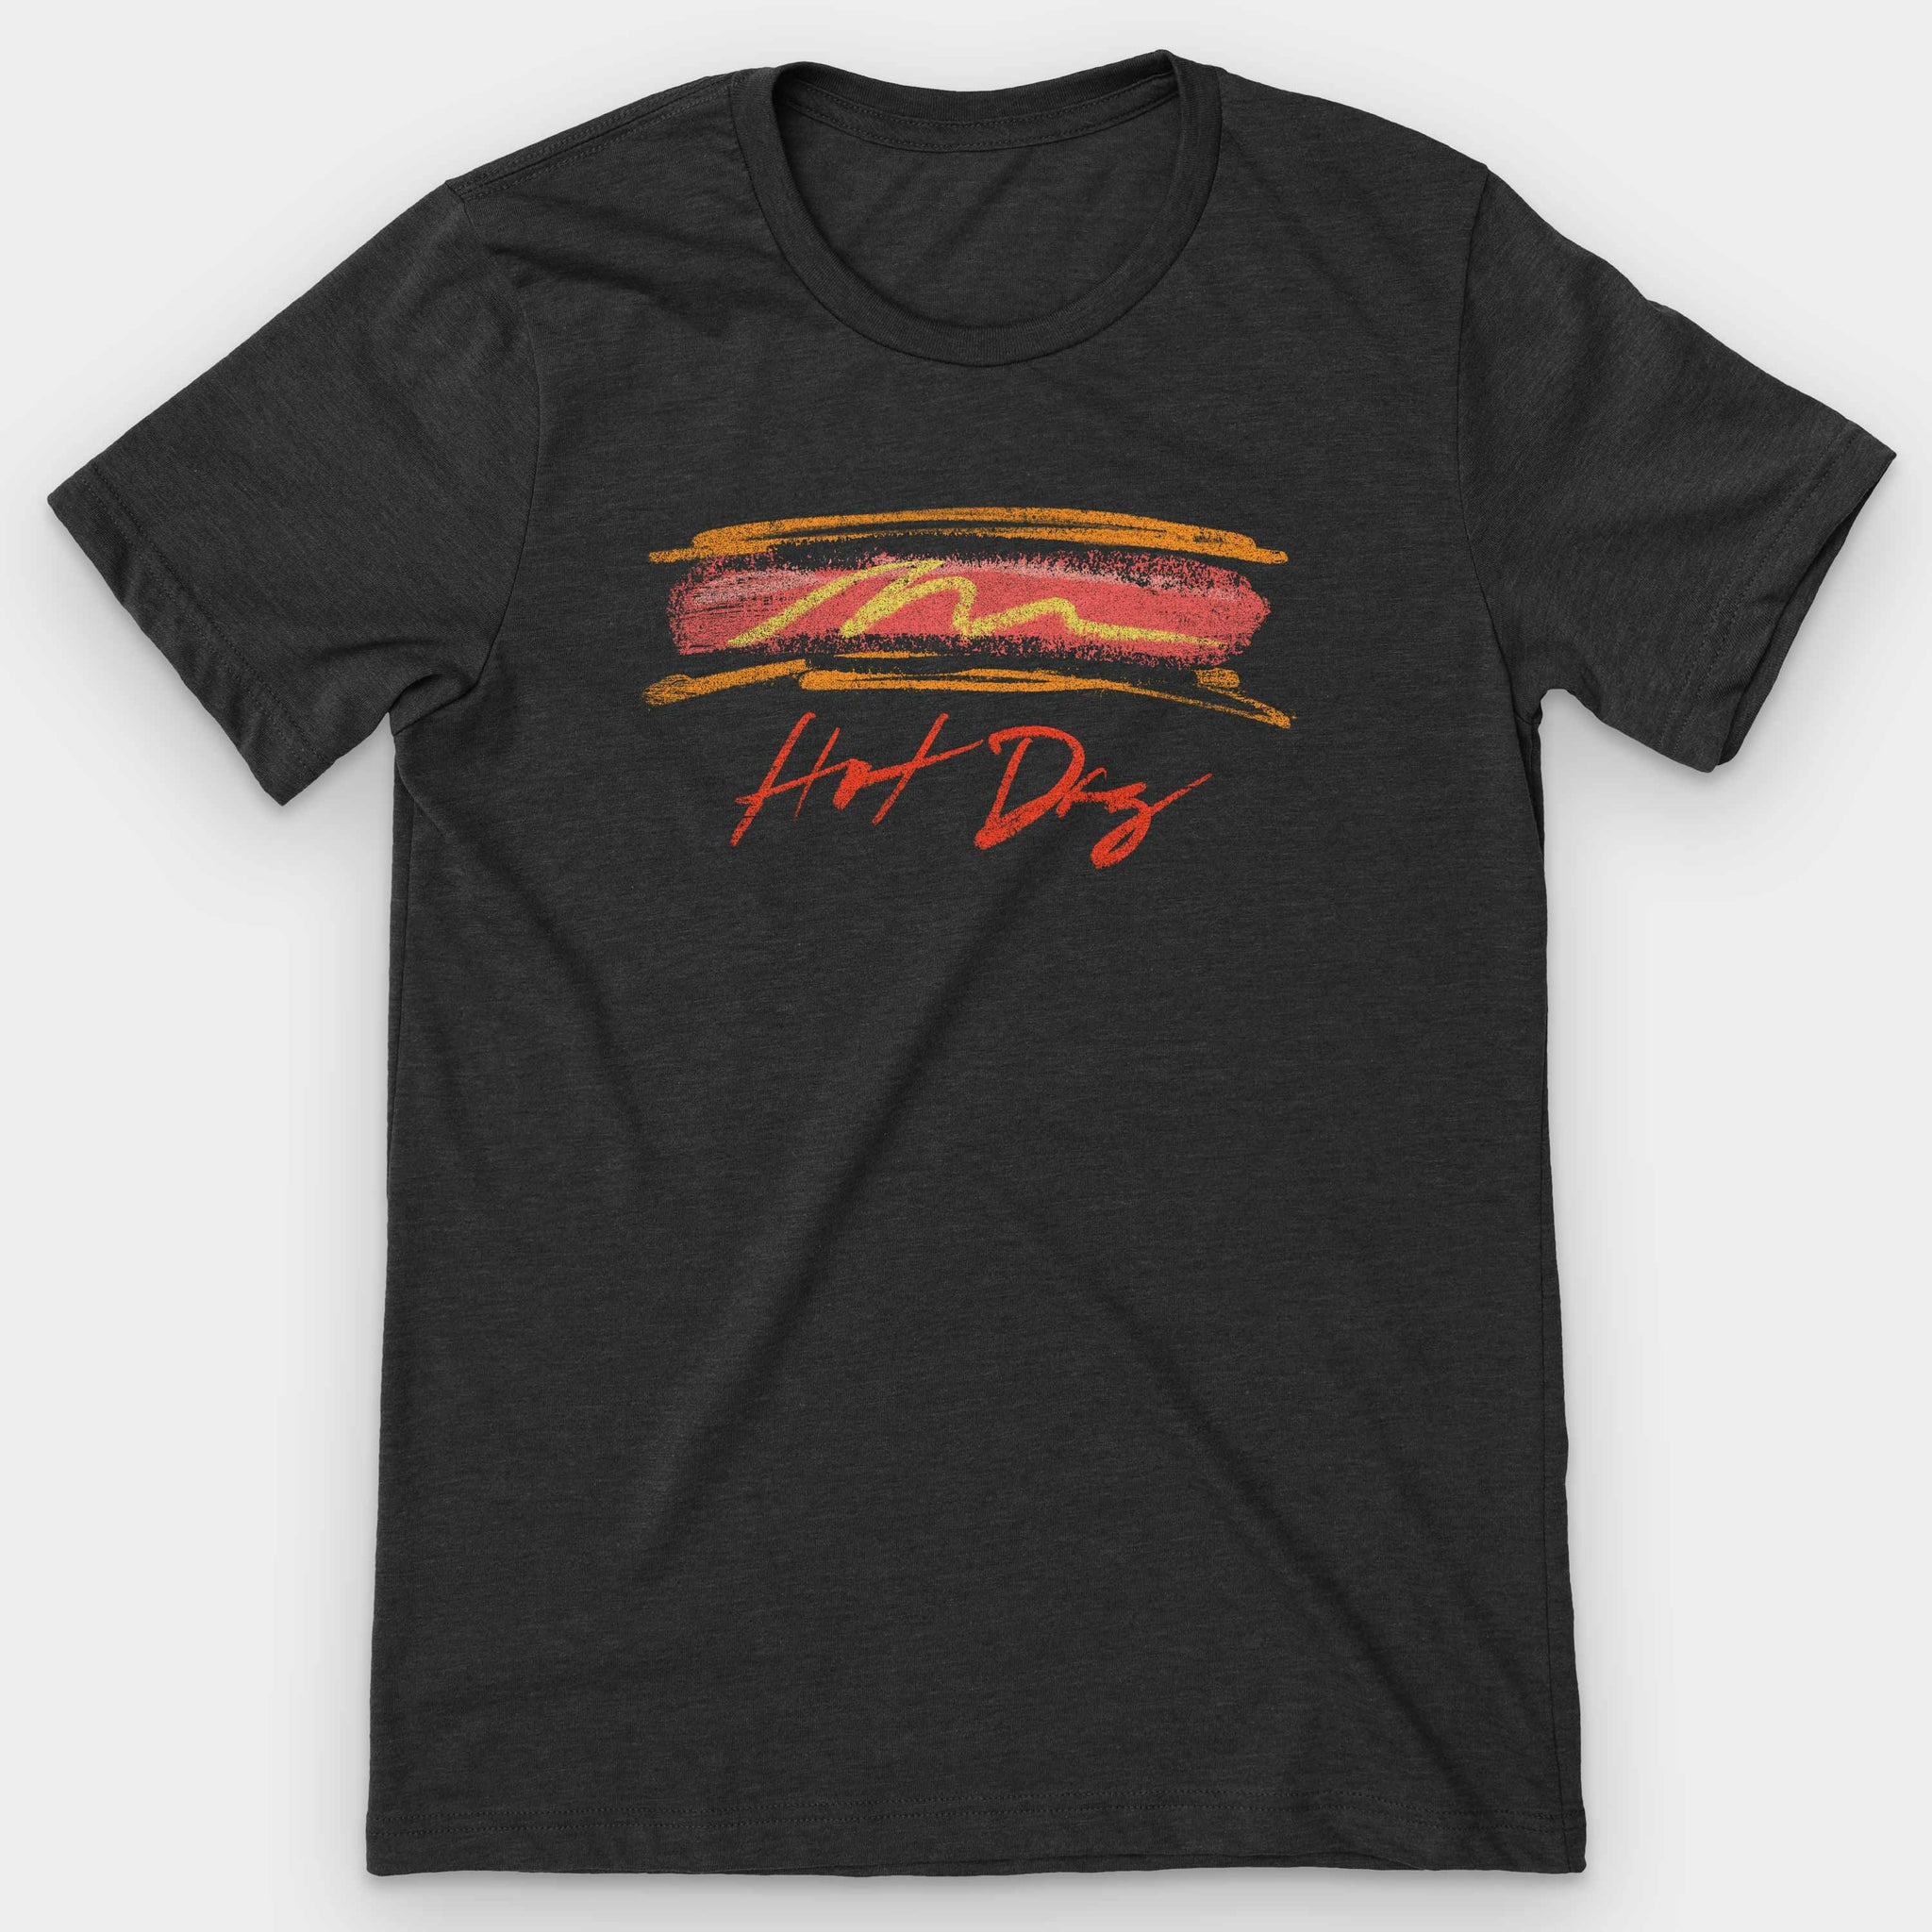 Hot Dog Graphic T-Shirt